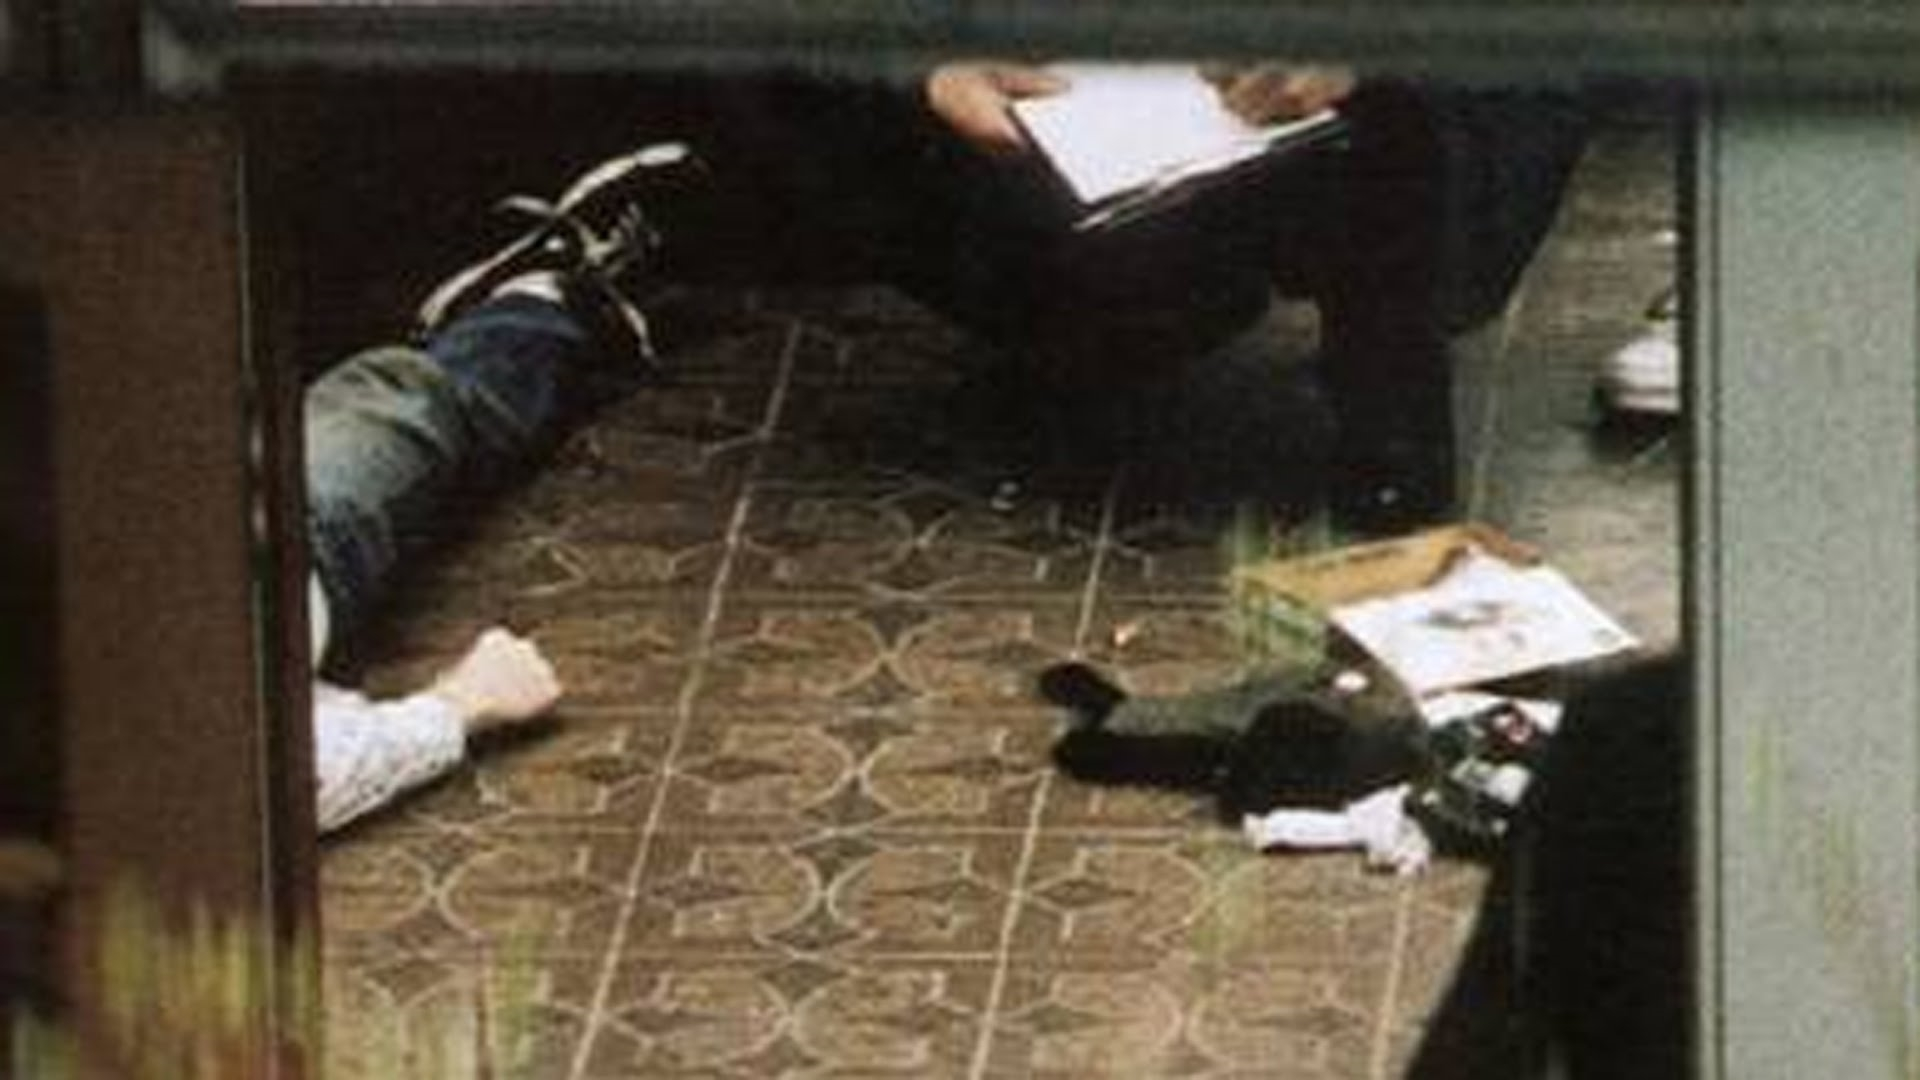 the mystery behind kurt cobains death The events behind kurt cobain's death as seen through the eyes of tom grant, the pi hired by courtney love in 1994 - the events behind kurt cobain's death a.